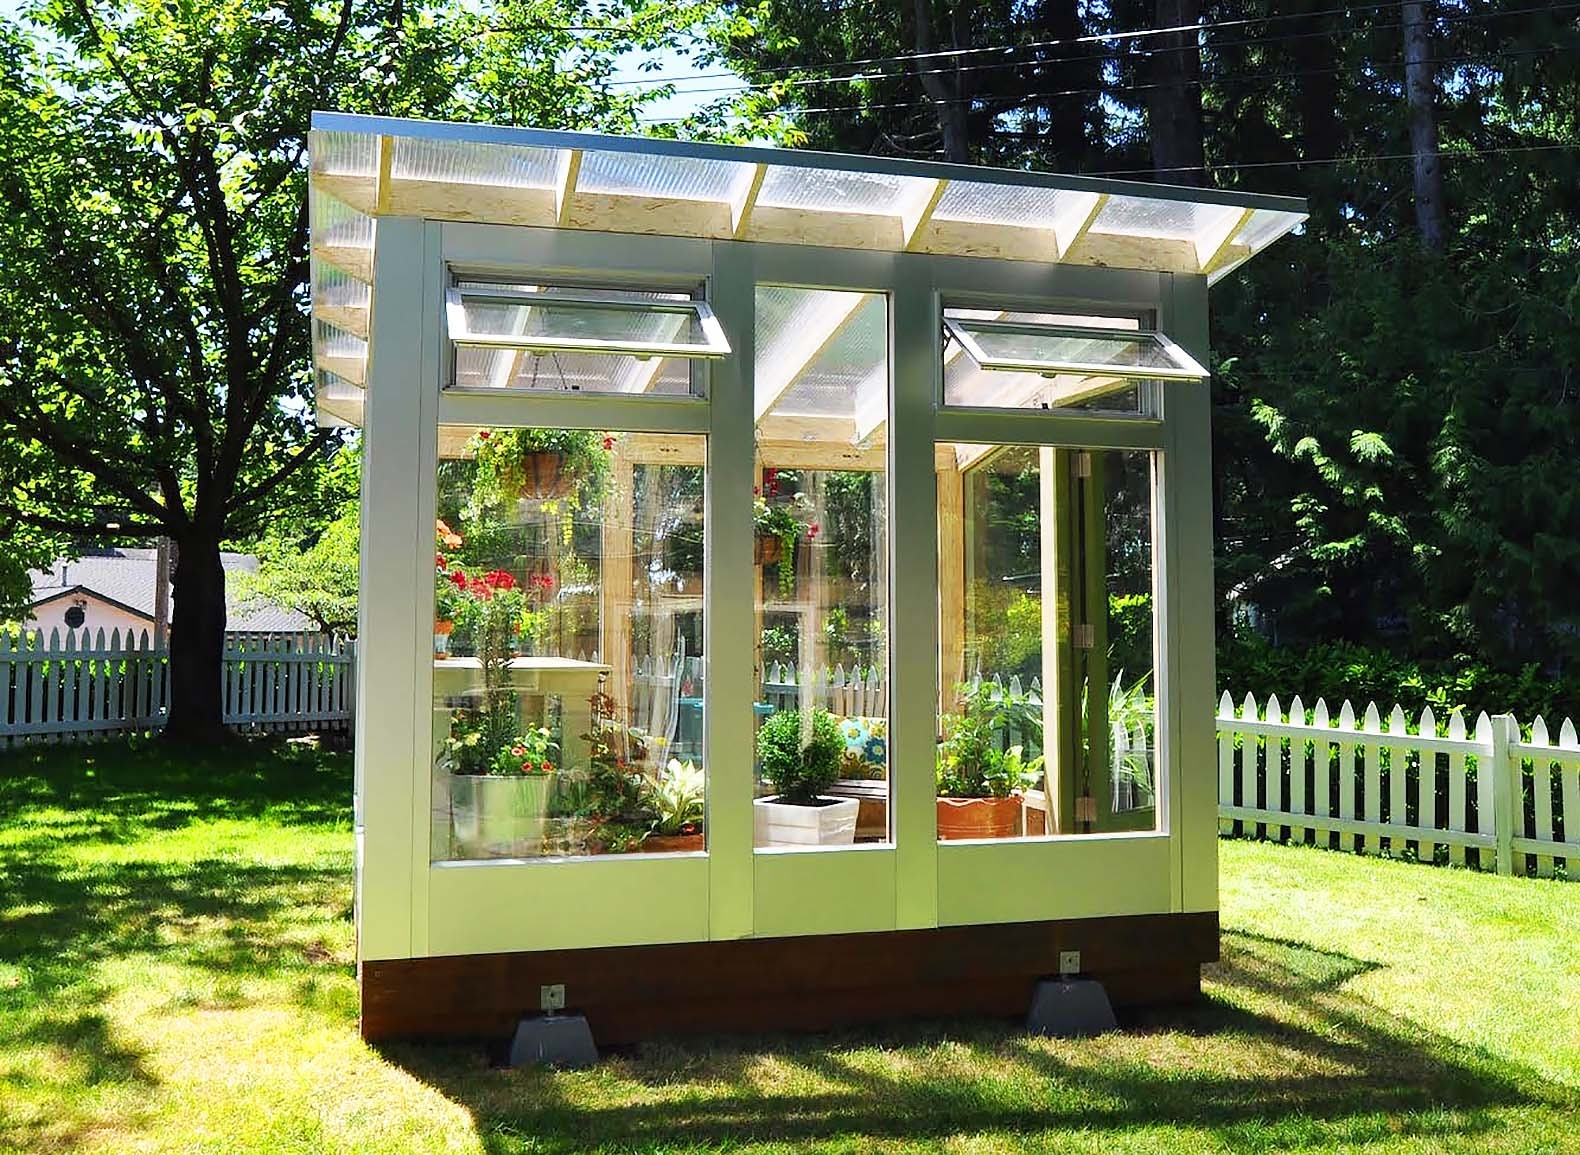 Garden Shed | Inhabitat - Green Design, Innovation, Architecture pertaining to Backyard Garden With Shed